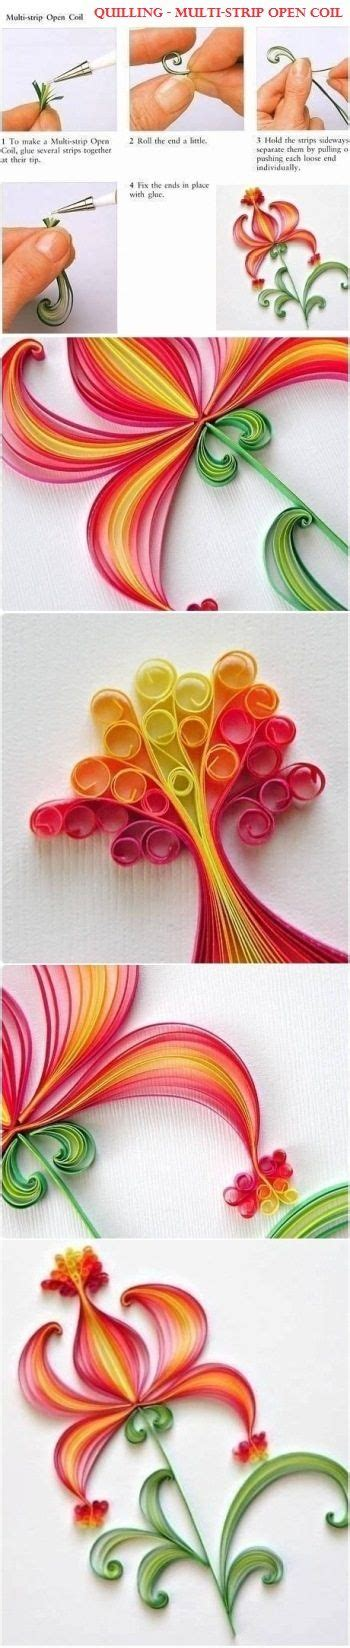 paper quilling tutorial step by step 1000 images about quilling and paper flower tutorials on